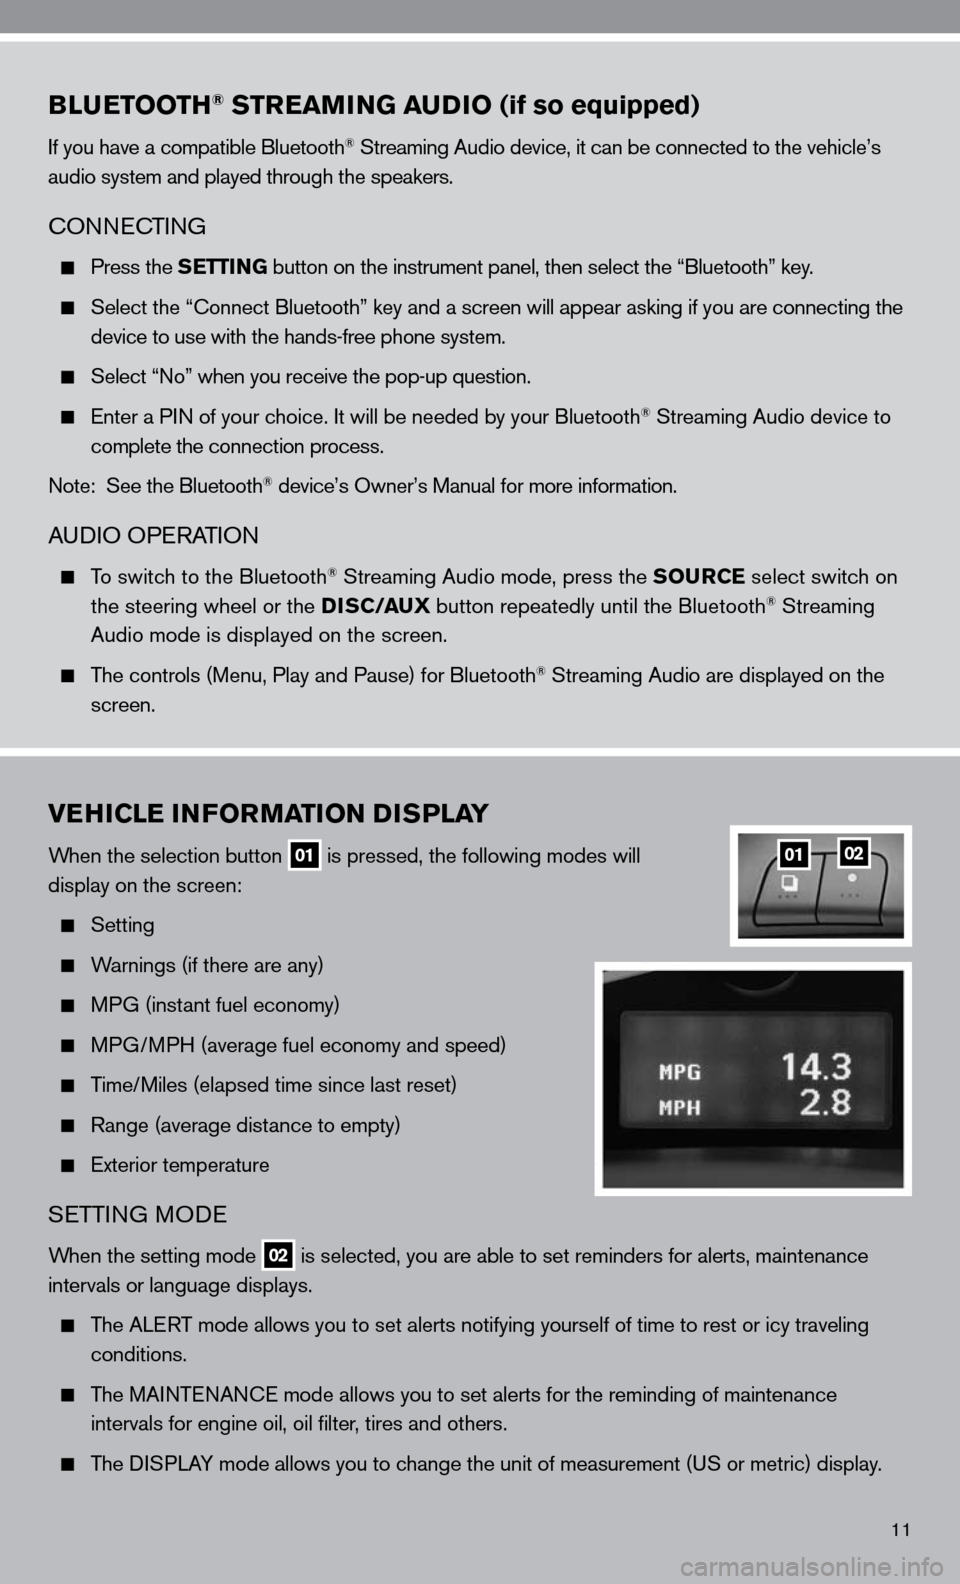 NISSAN ALTIMA COUPE 2010 D32 / 4.G Quick Reference Guide 11 BLUETOOTH® STREAMING AUDIO (if so equipped)    if you have a compatible Bluetooth® Streaming Audio device, it can be connected to the vehicle's  audio system and played through the speakers. cO